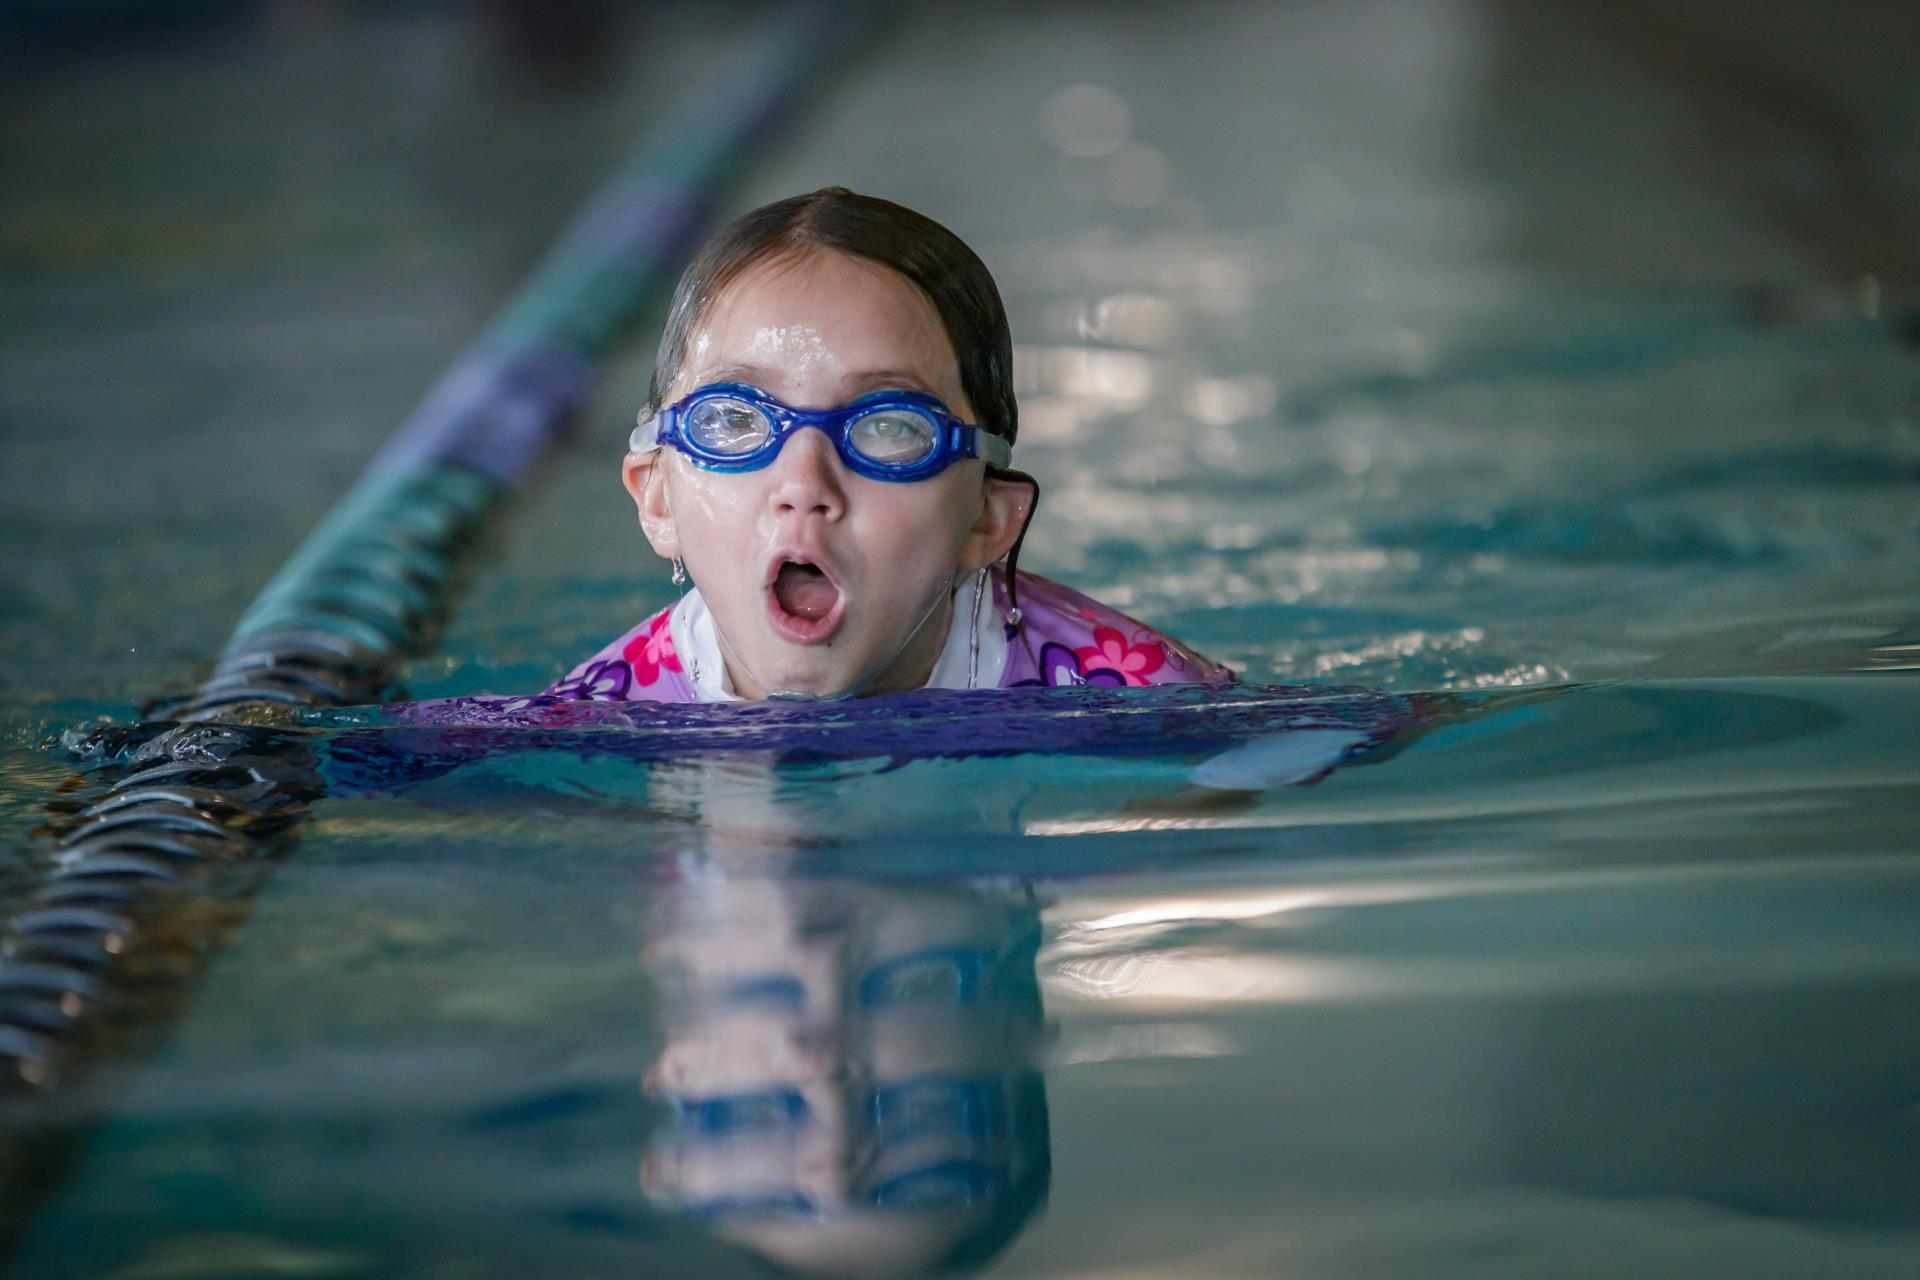 Child in goggles swimming in pool